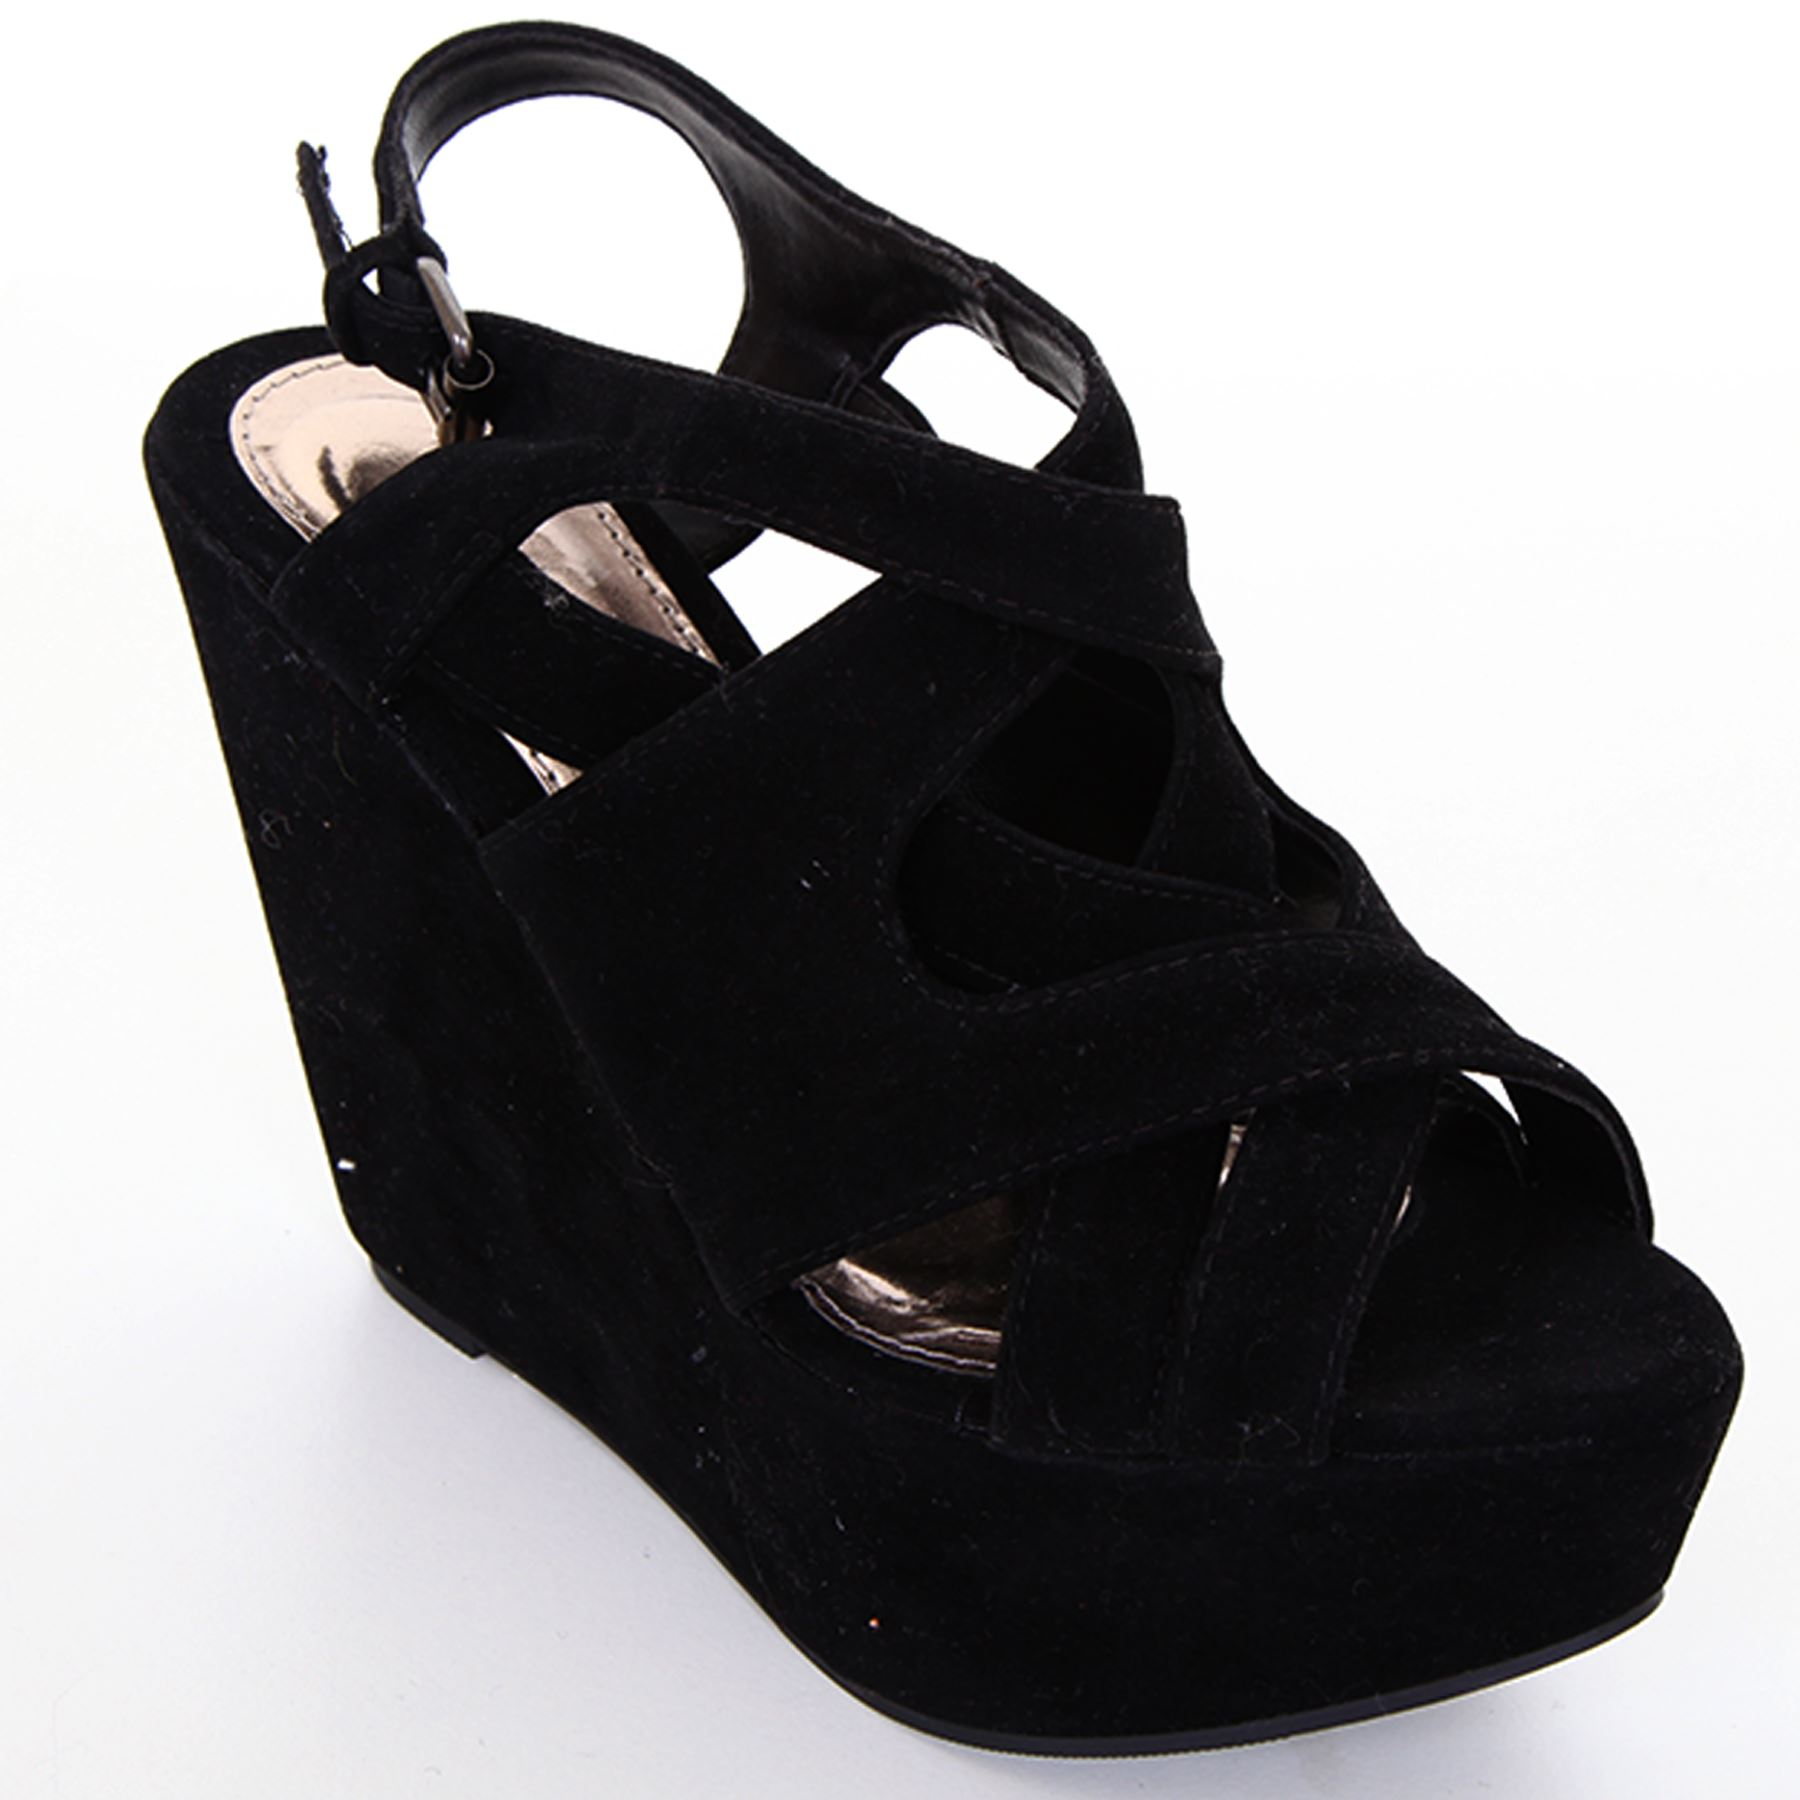 Ladies-Cross-Wrap-Strap-Front-Peep-Toe-Womens-High-Black-Wedges-Shoes